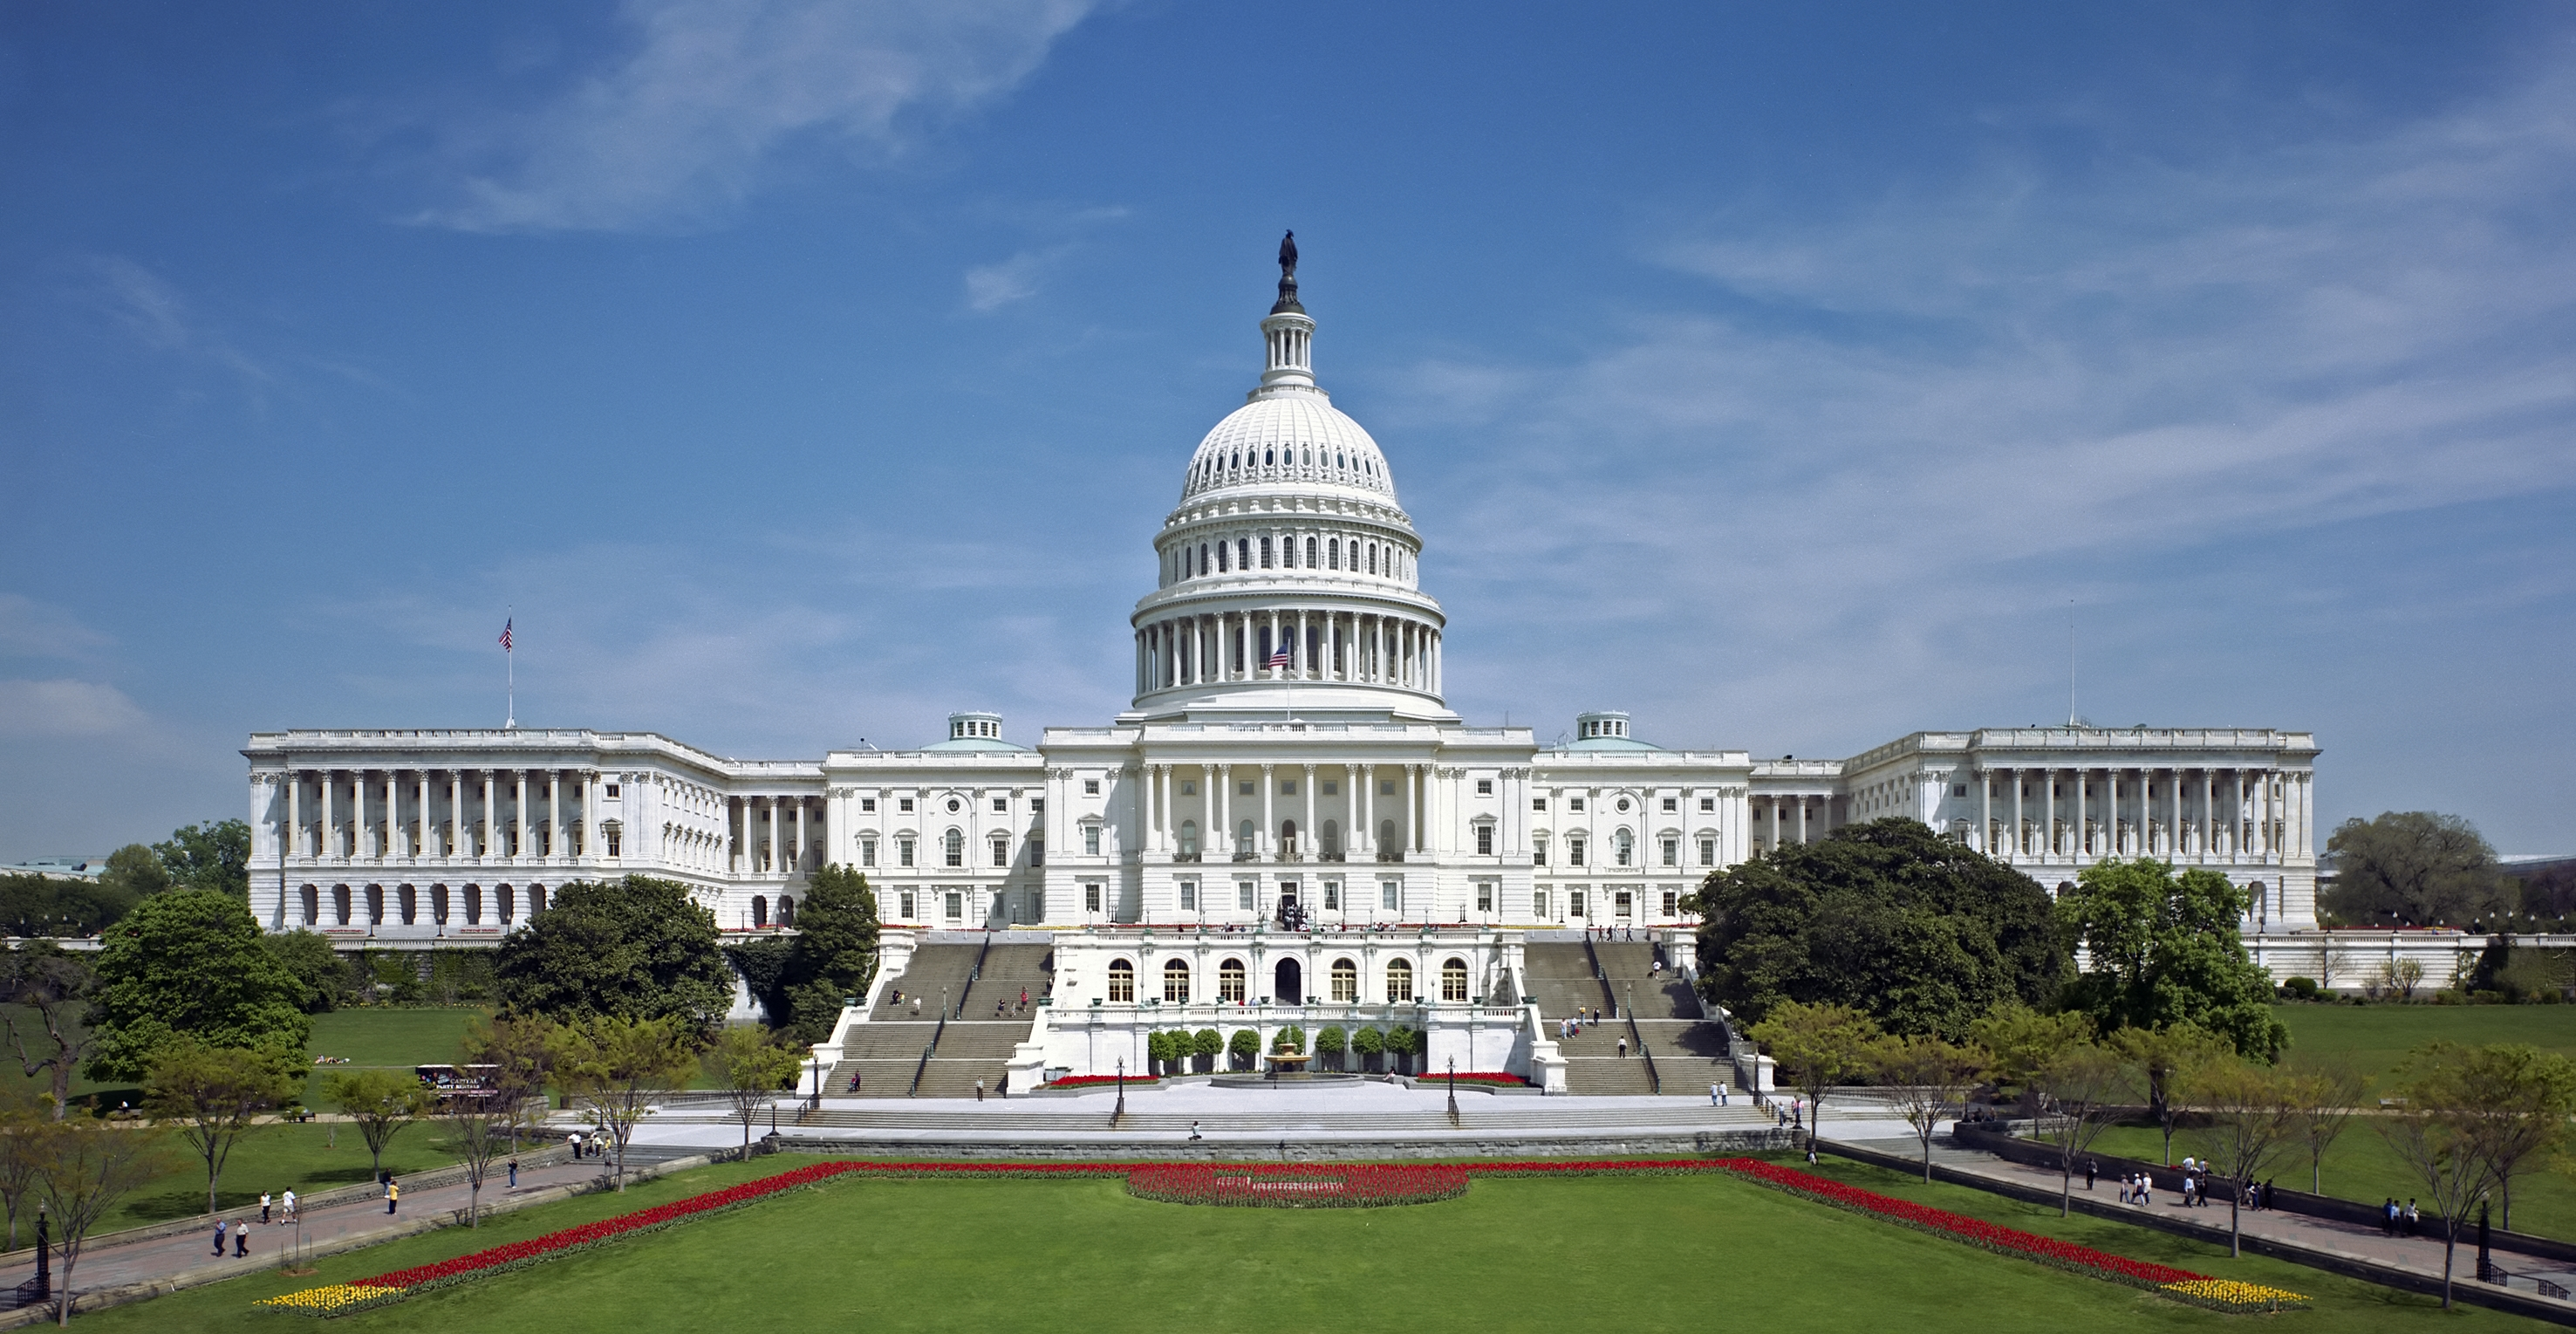 United States Capital building, west front